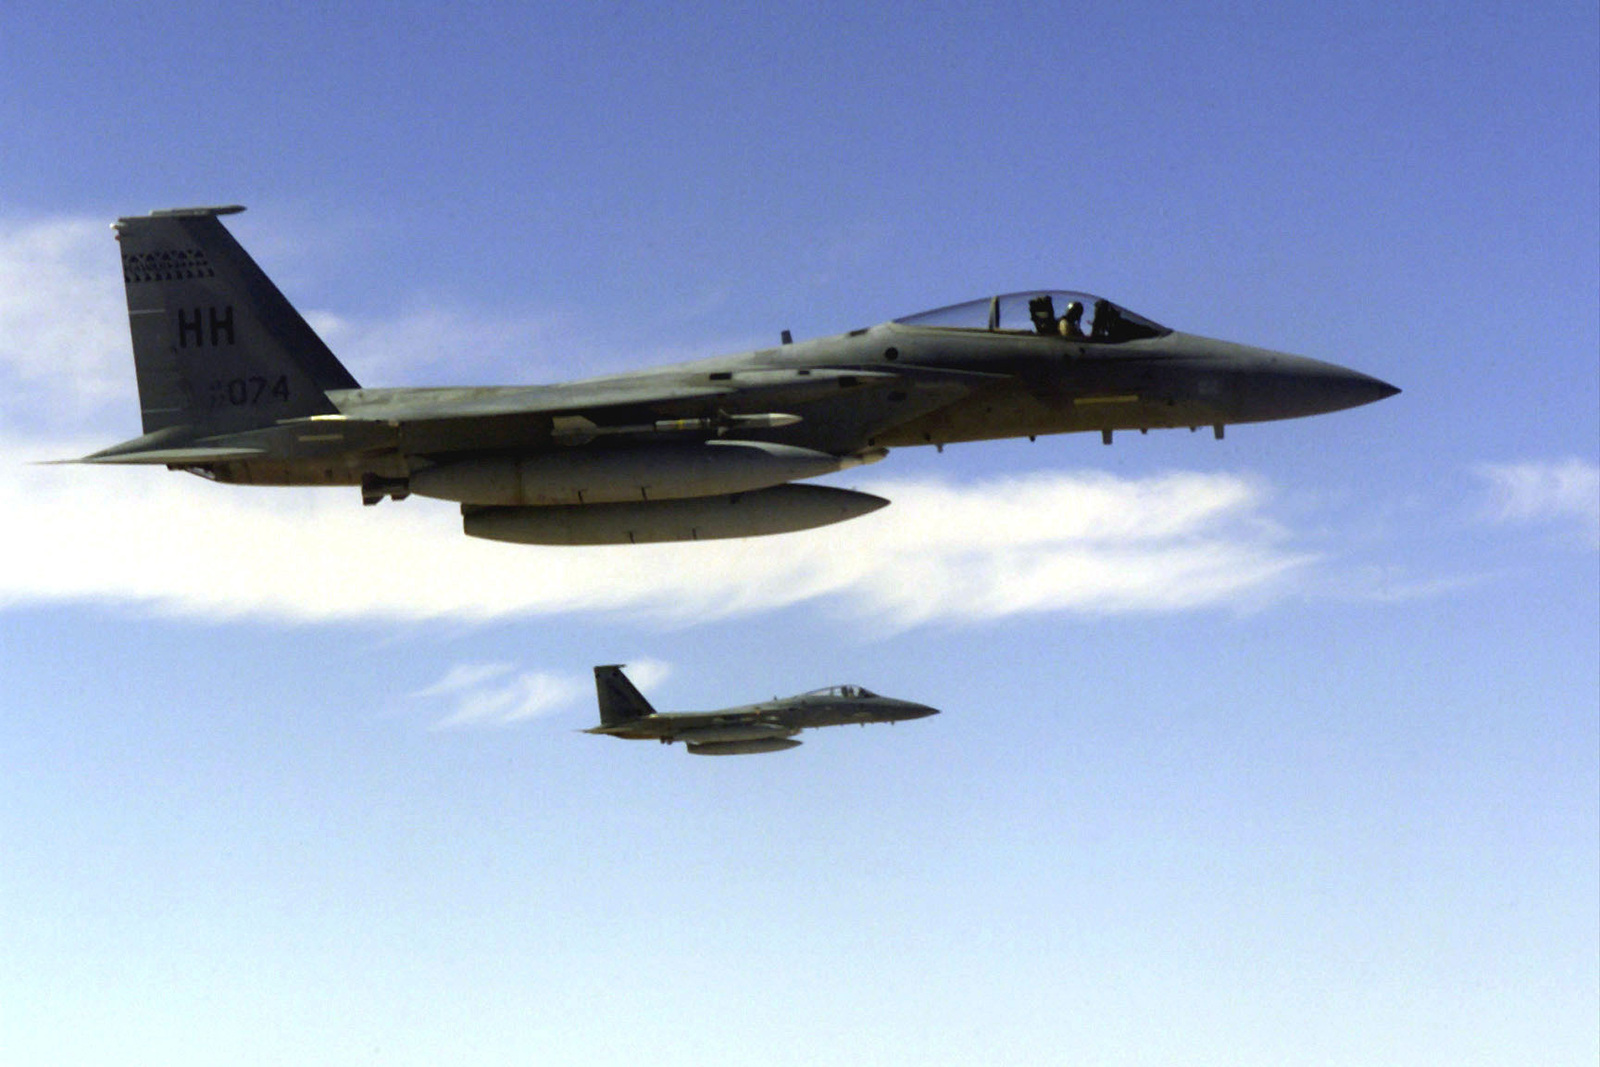 Two F-15 Eagle aircrafts over Saudi Arabia in support of Operation SOUTHERN WATCH. The F-15s are a part of the coalition forces of the 363rd Air Expeditionary Wing who enforce the no-fly and no-drive zone in Southern Iraq to protect and defend against Iraqi aggression